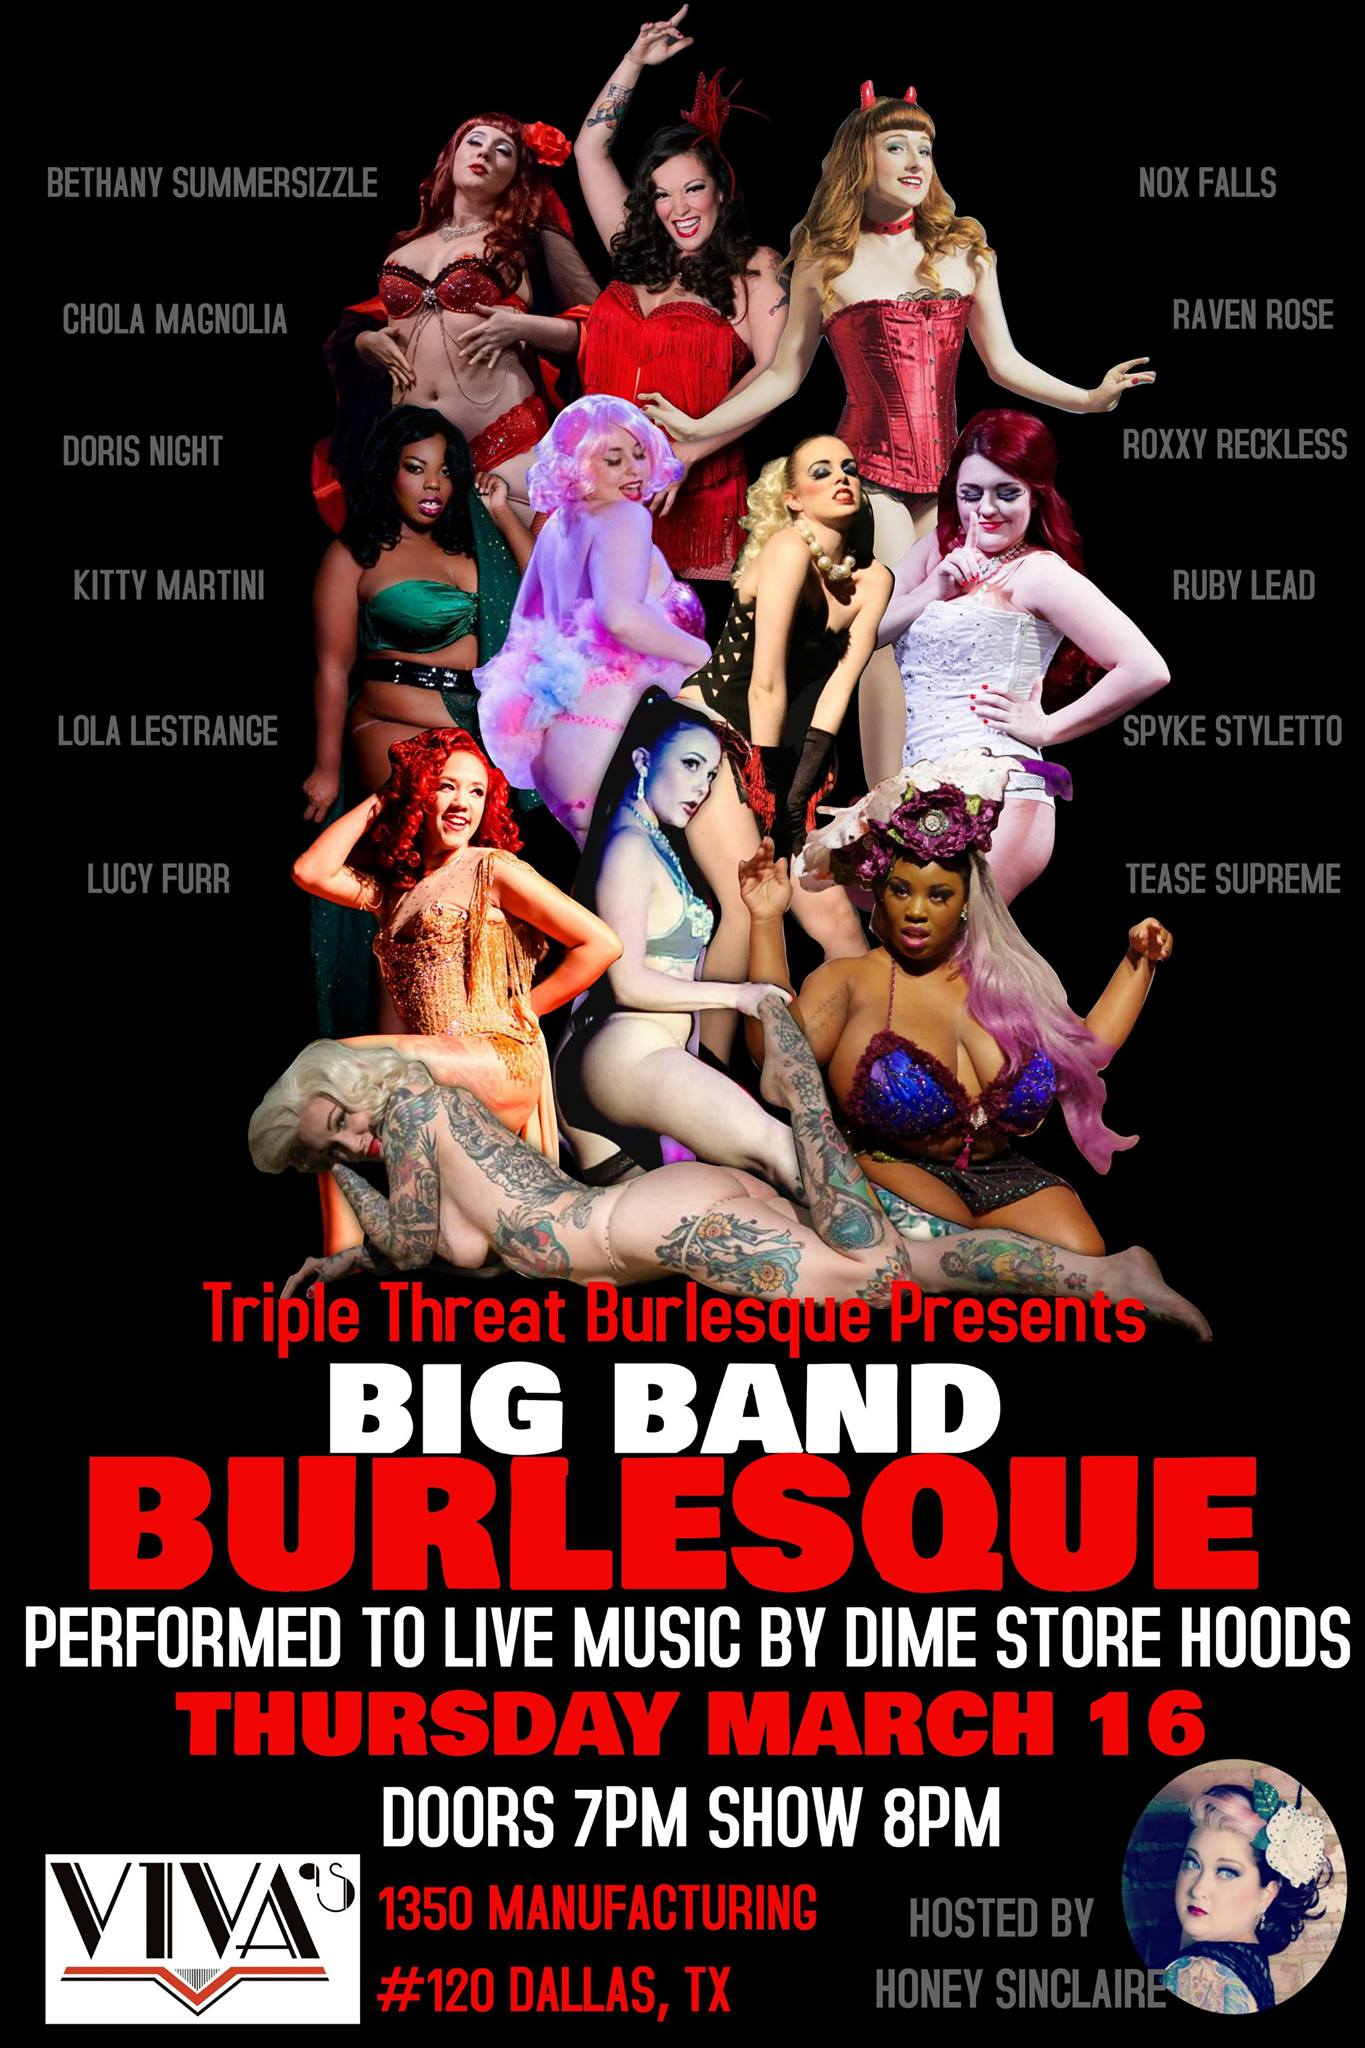 Big Band Burlesque